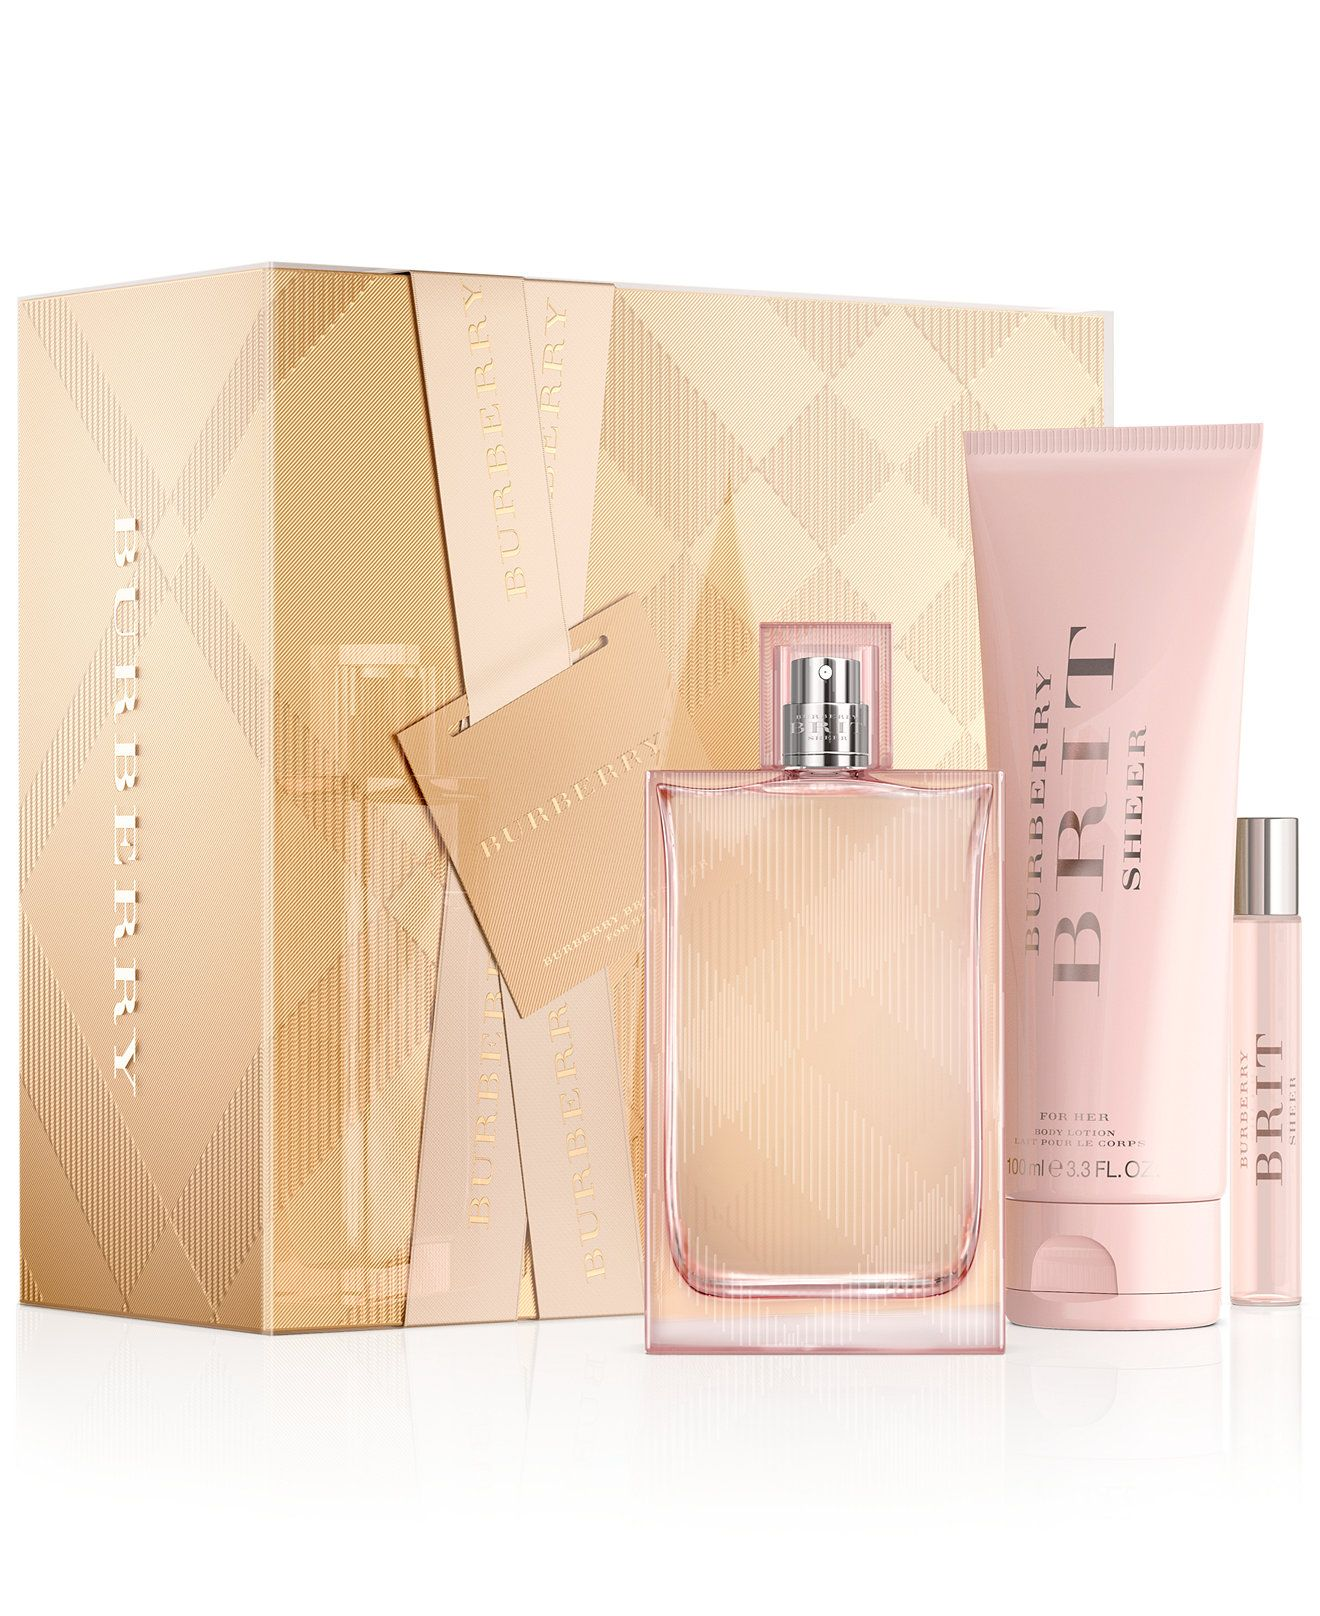 burberry brit sheer eau de toilette spray sqhc  Burberry Brit Sheer Gift Set